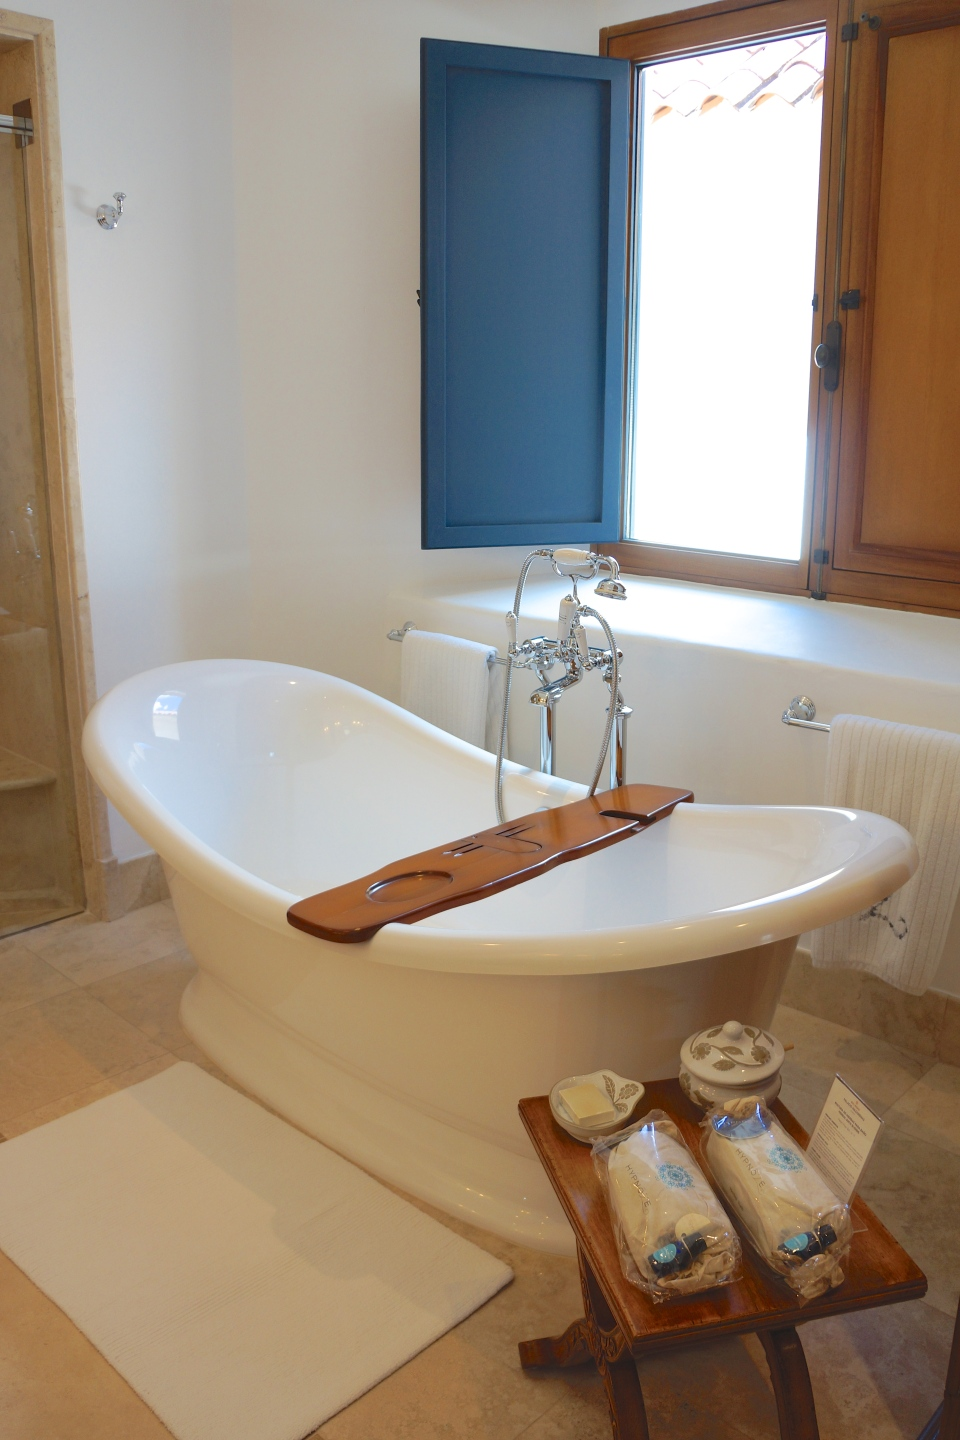 MASTER SUITE 200 FREE STANDING TUB